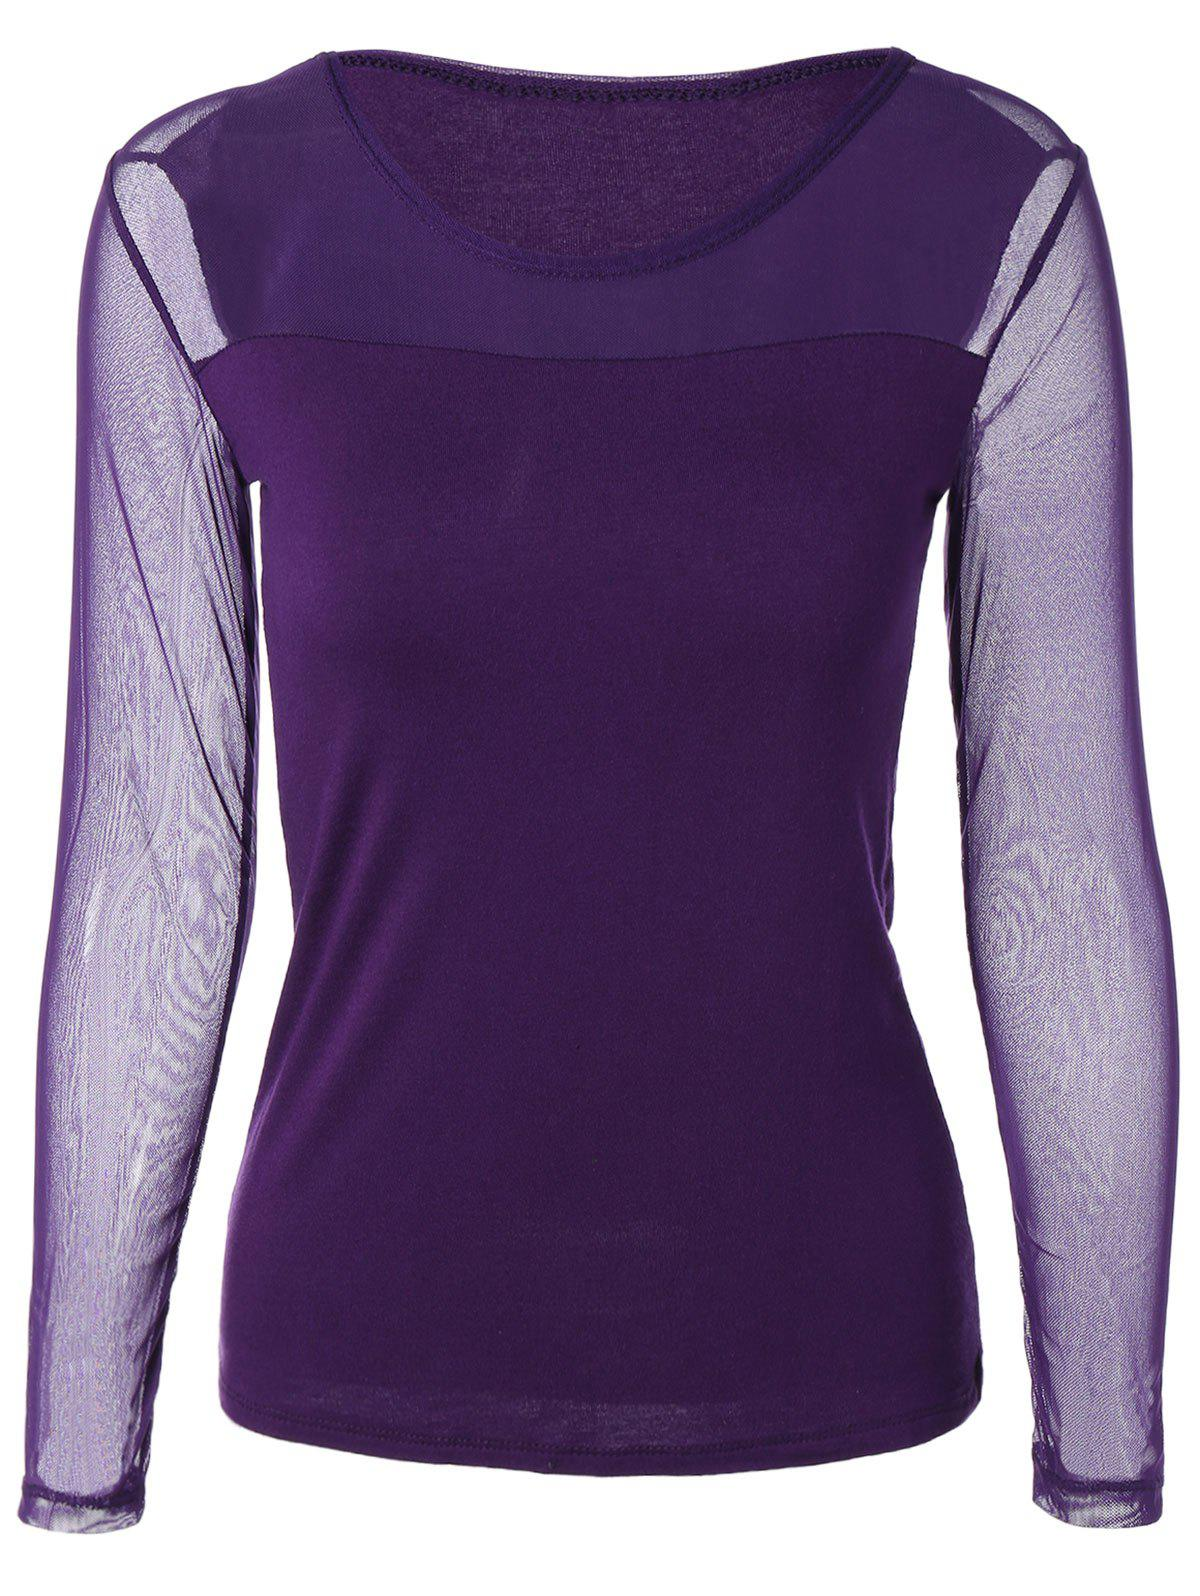 Scoop Neck Mesh-Insert Slimming T-shirt - Pourpre 5XL